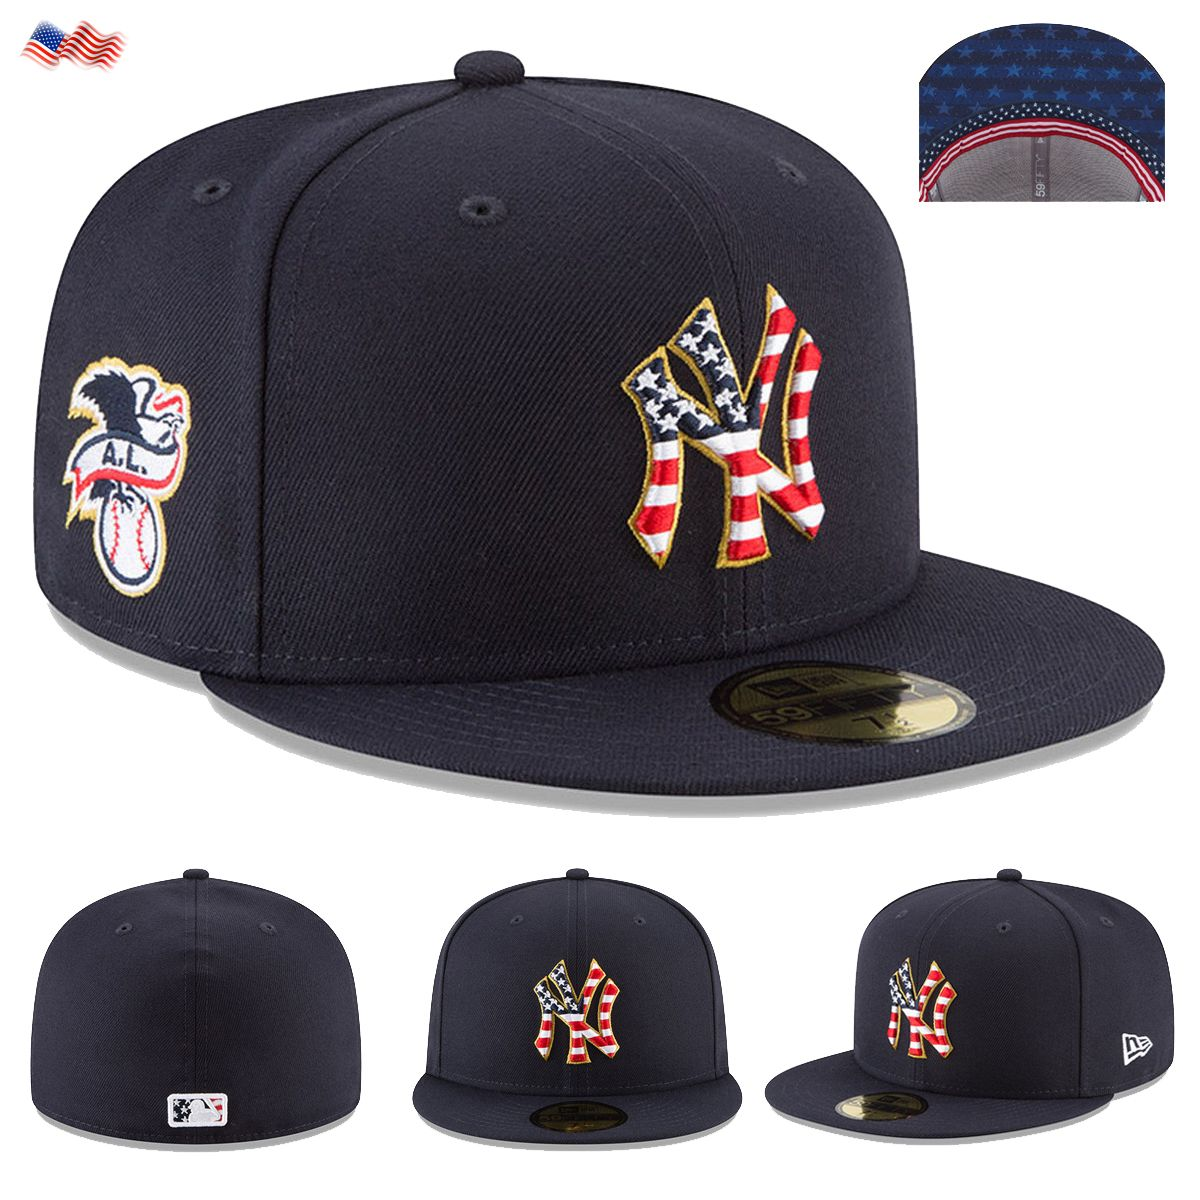 Celebrate the 4th of July 2018 holiday in style when you grab this Stars    Stripes New York Yankees On-Field 59FIFTY Fitted Hat from New Era. 92abcdfe4d4